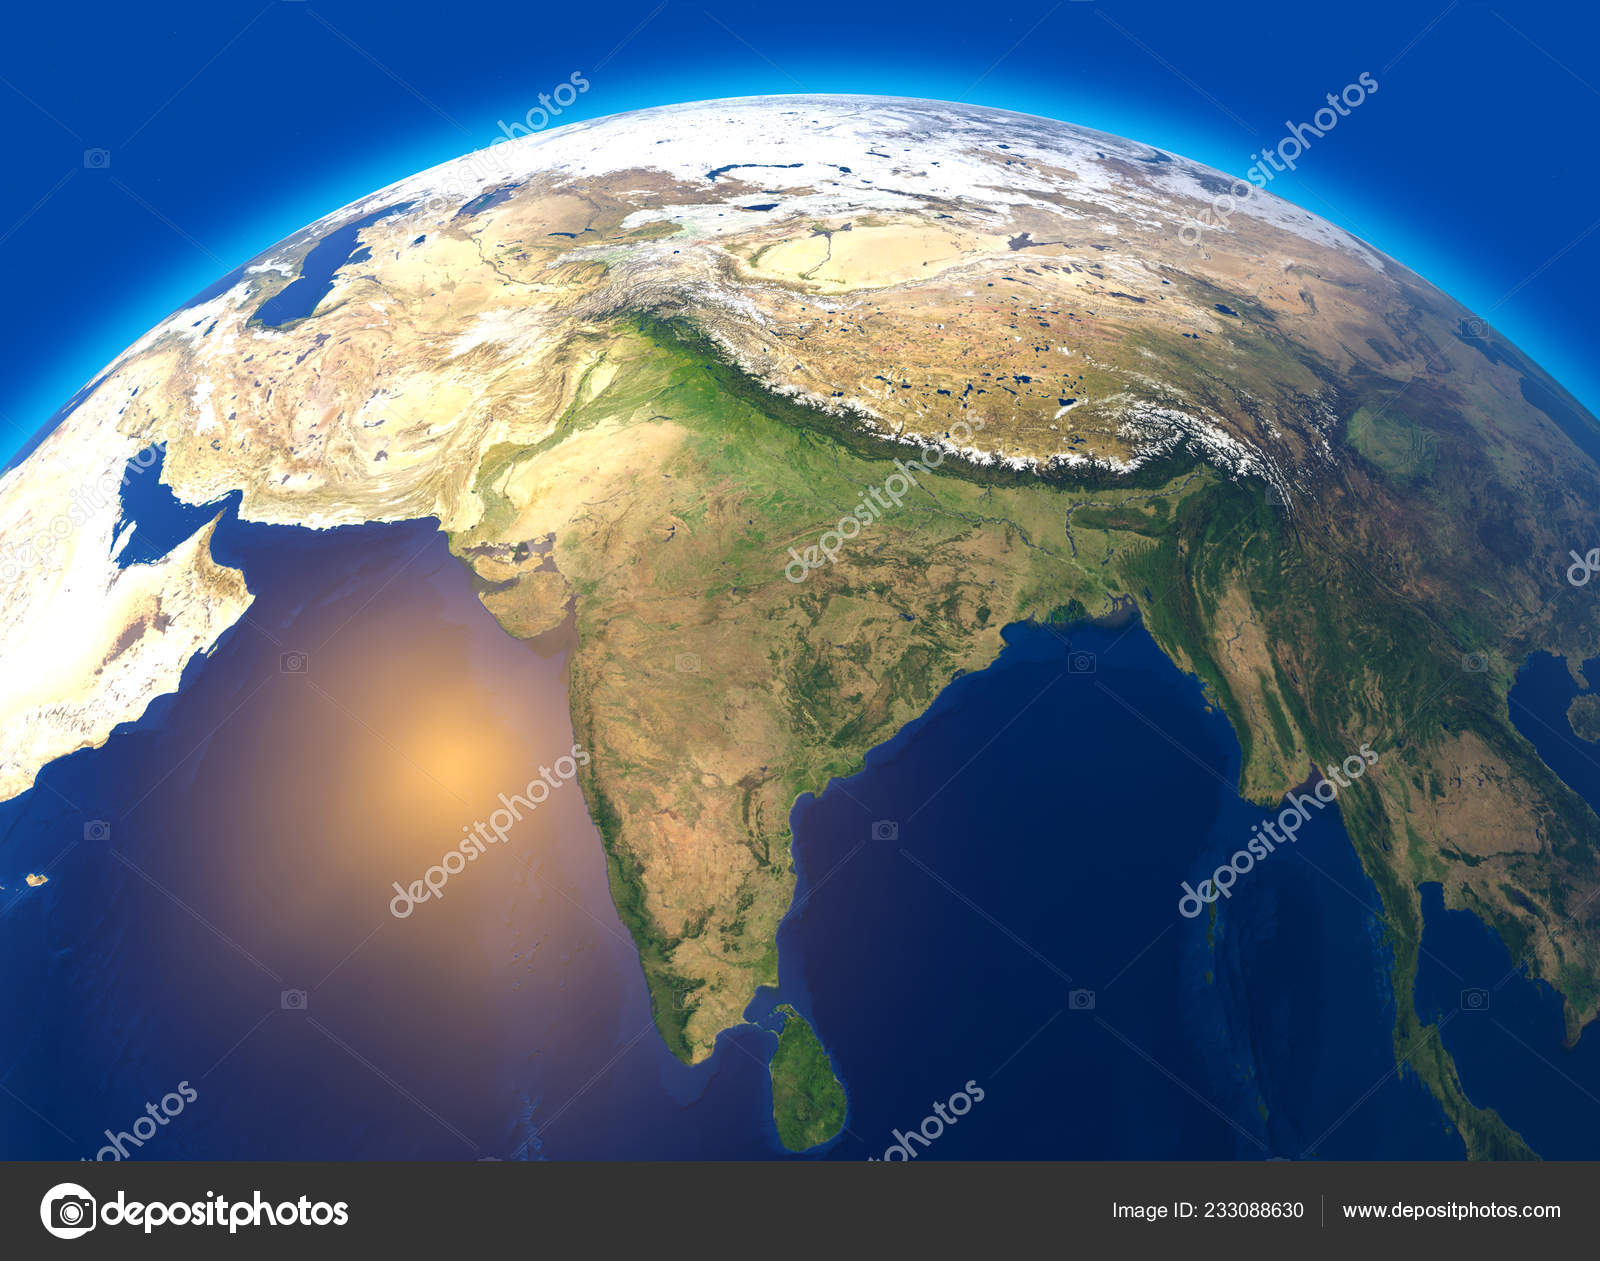 Map Of The World Globe View.Physical Map World Satellite View India Asia Globe Hemisphere